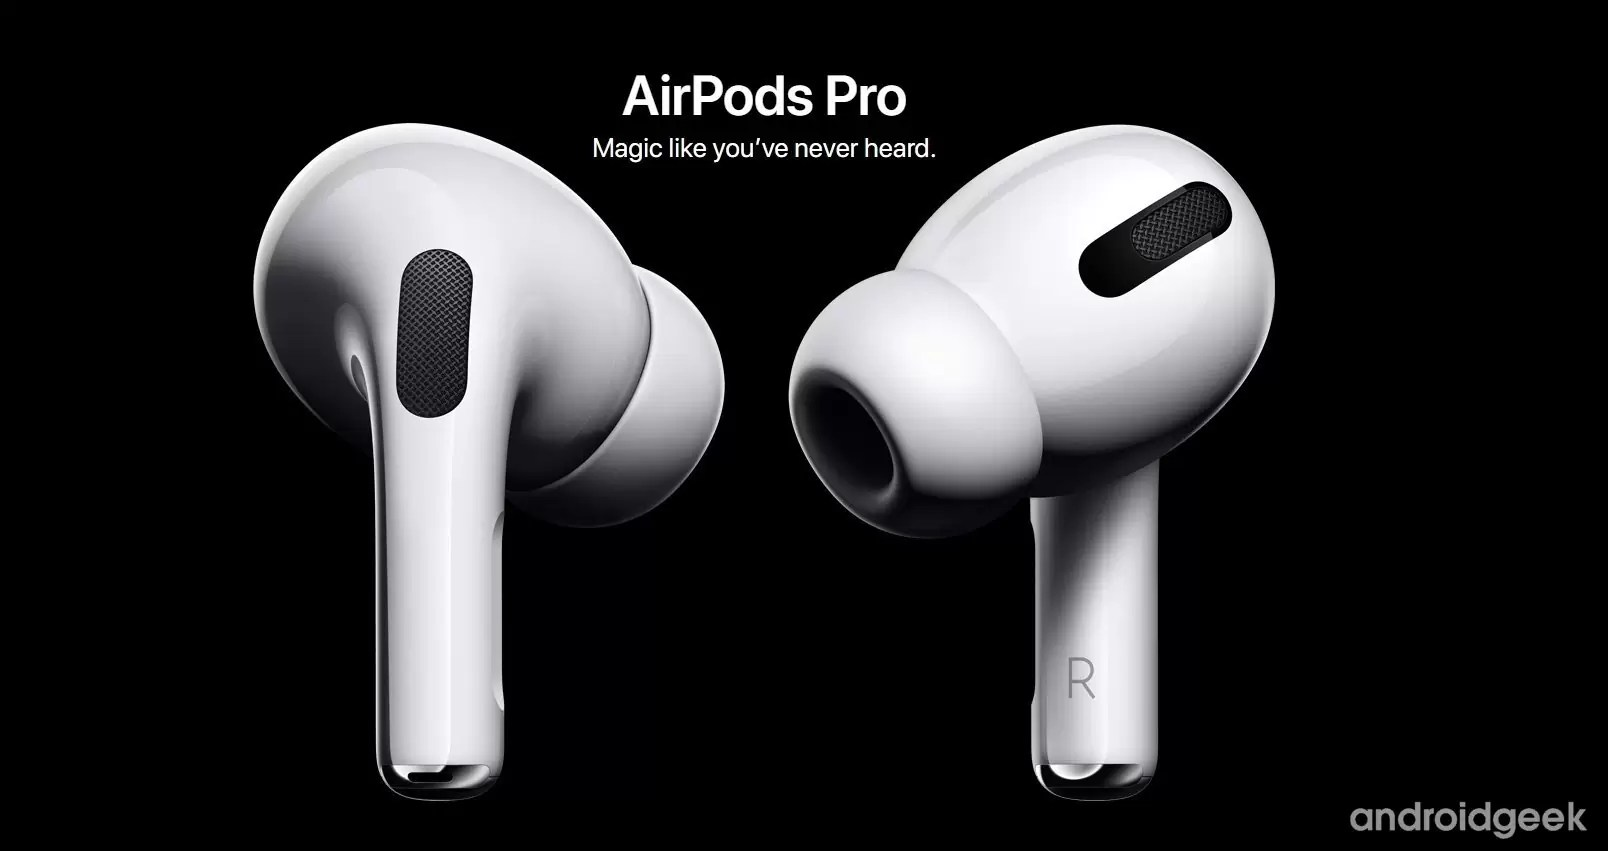 191029-apple-airpods-pro-01.jpg